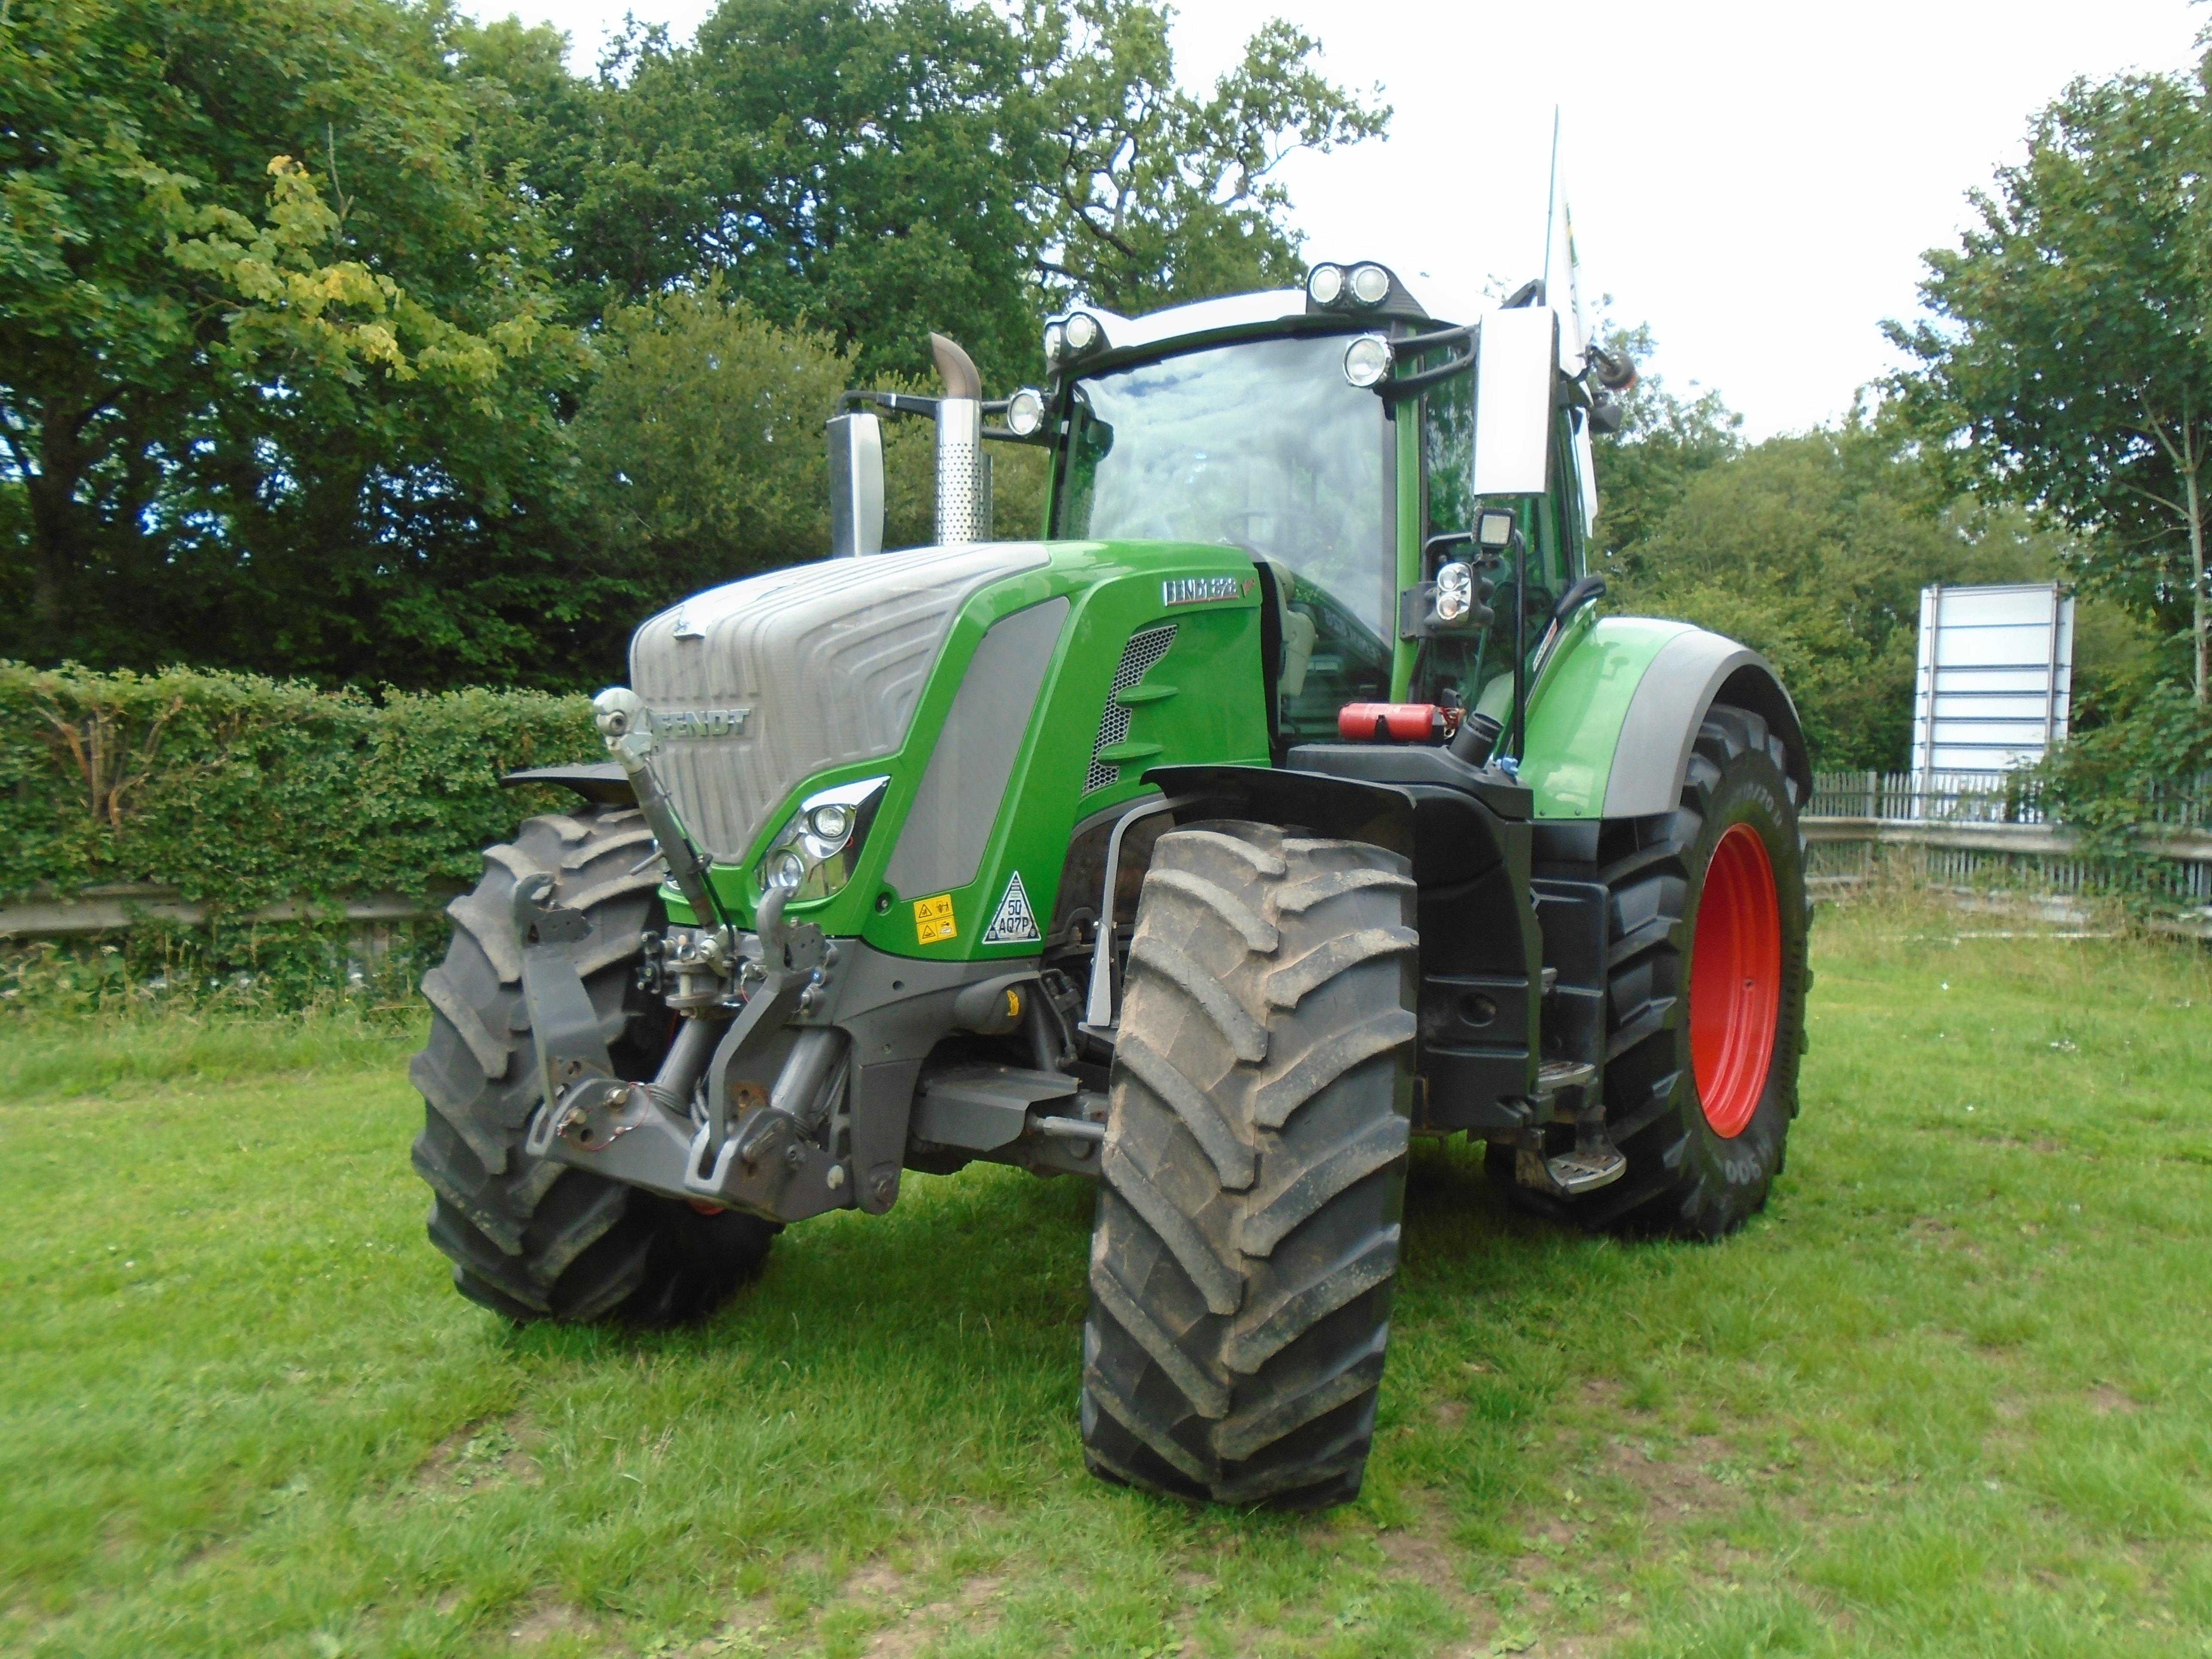 Online Timed Collective Auction of Tractors, Vehicles, Agricultural Machinery and Sundries